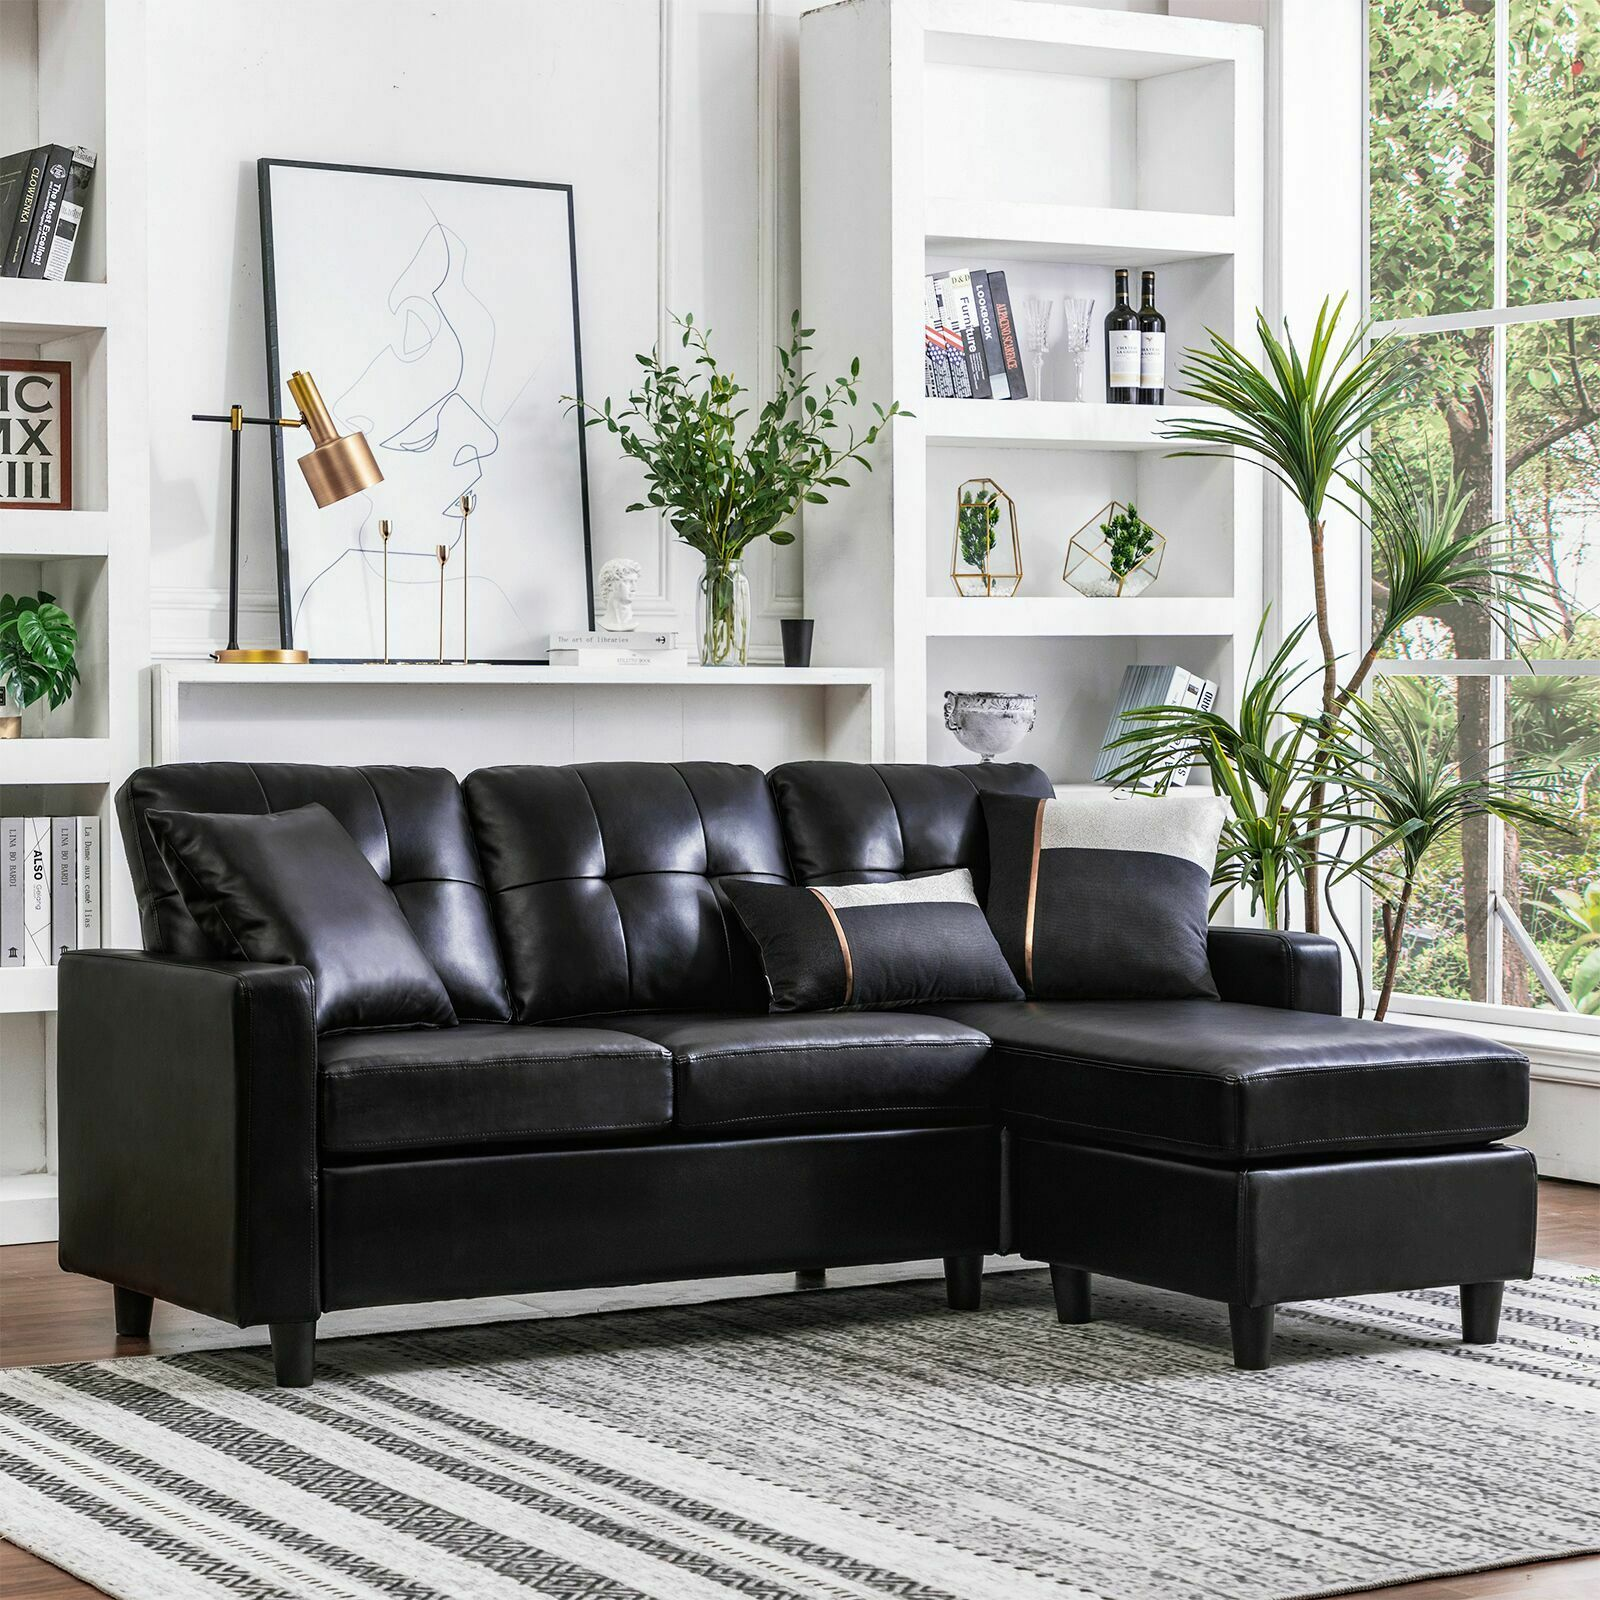 Picture of: Vogue Bonded Leather Reversible Chaise Sectional Sofa Brown For Sale Online Ebay